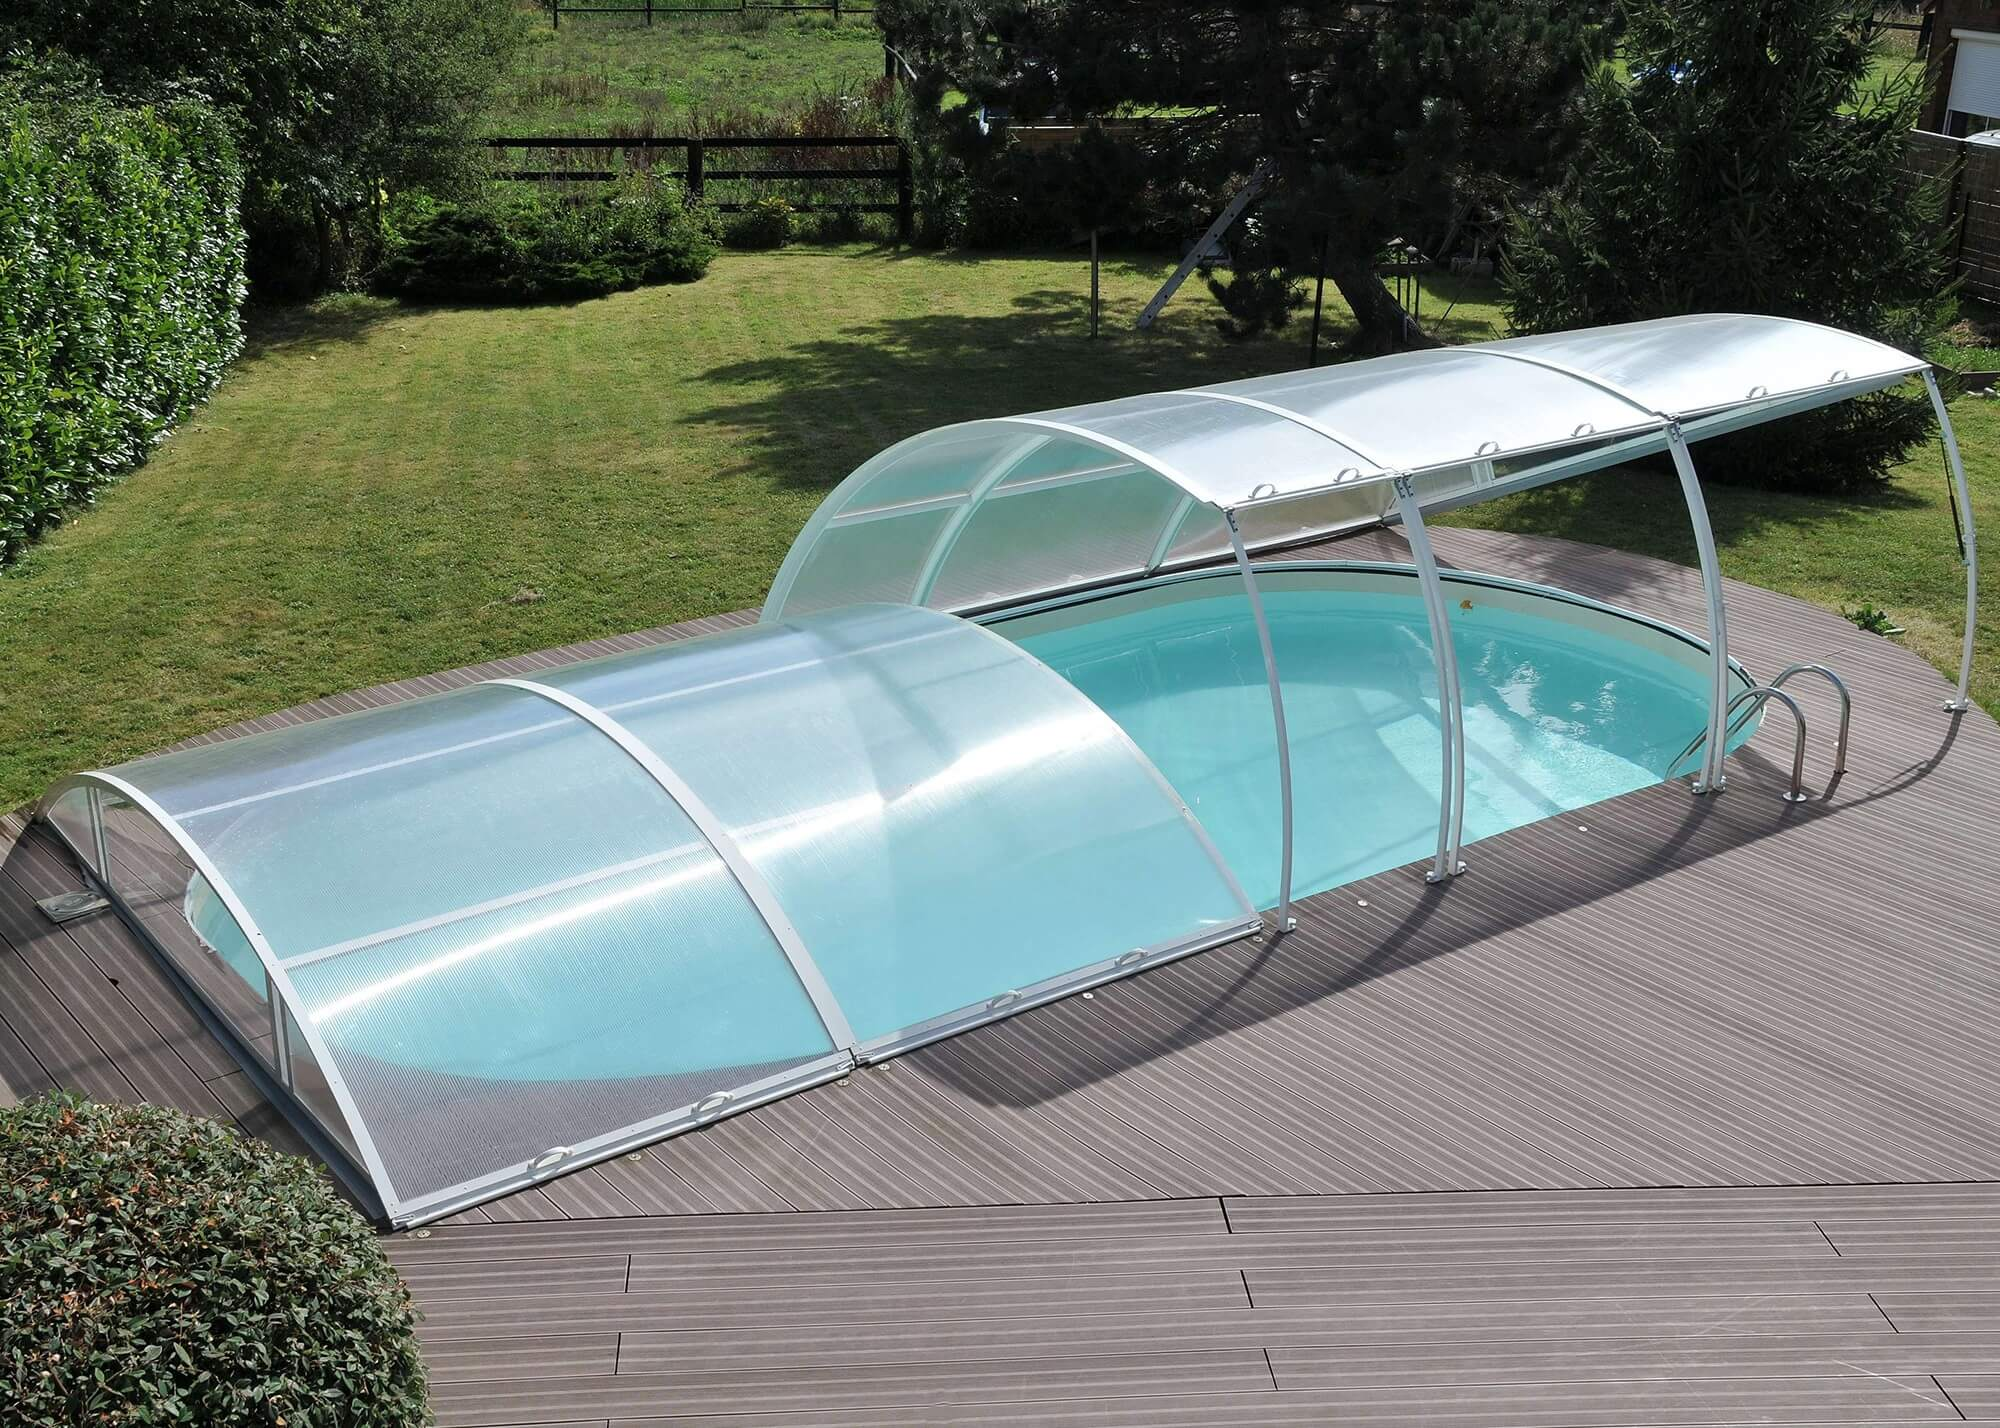 Protection piscine amovible beautiful barrire ou clture for Protection pour piscine